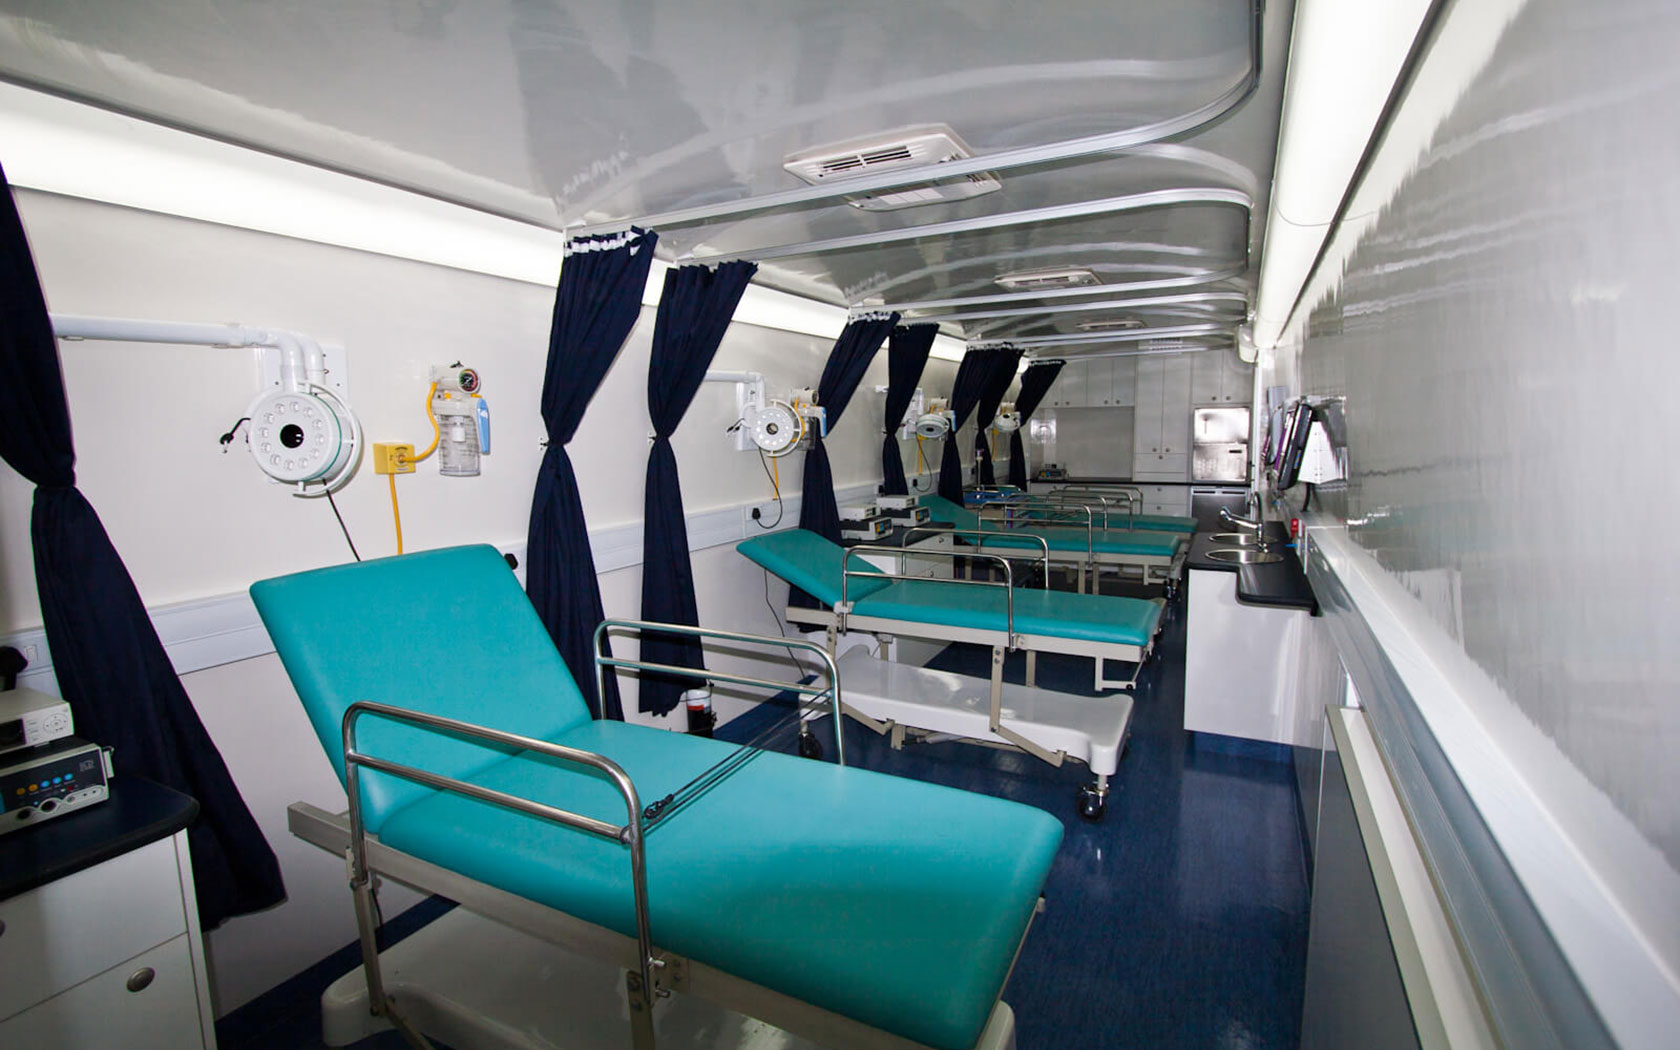 The mobile circumcision clinic interior